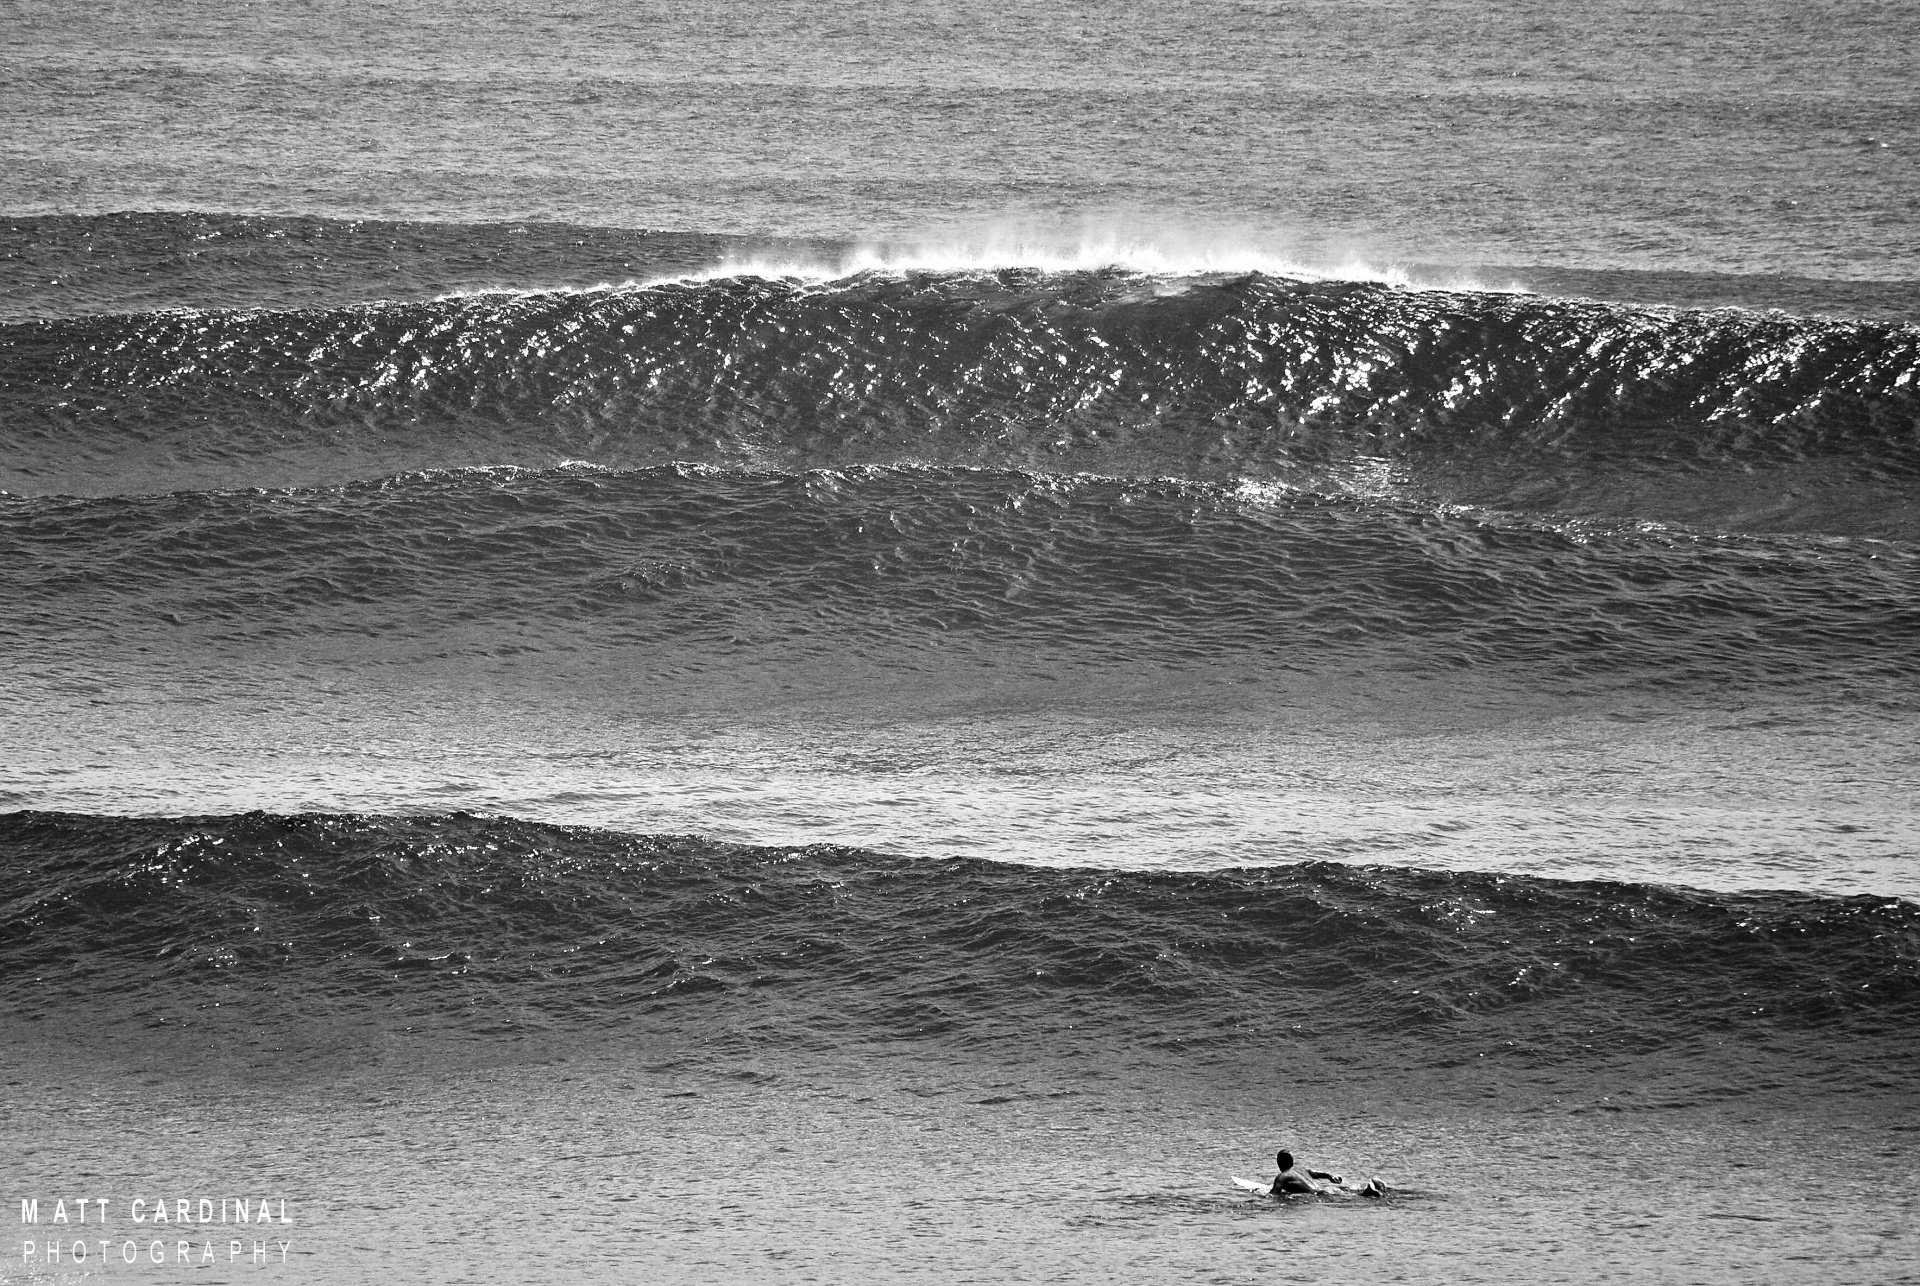 Matt Cardinal's photo of Uluwatu